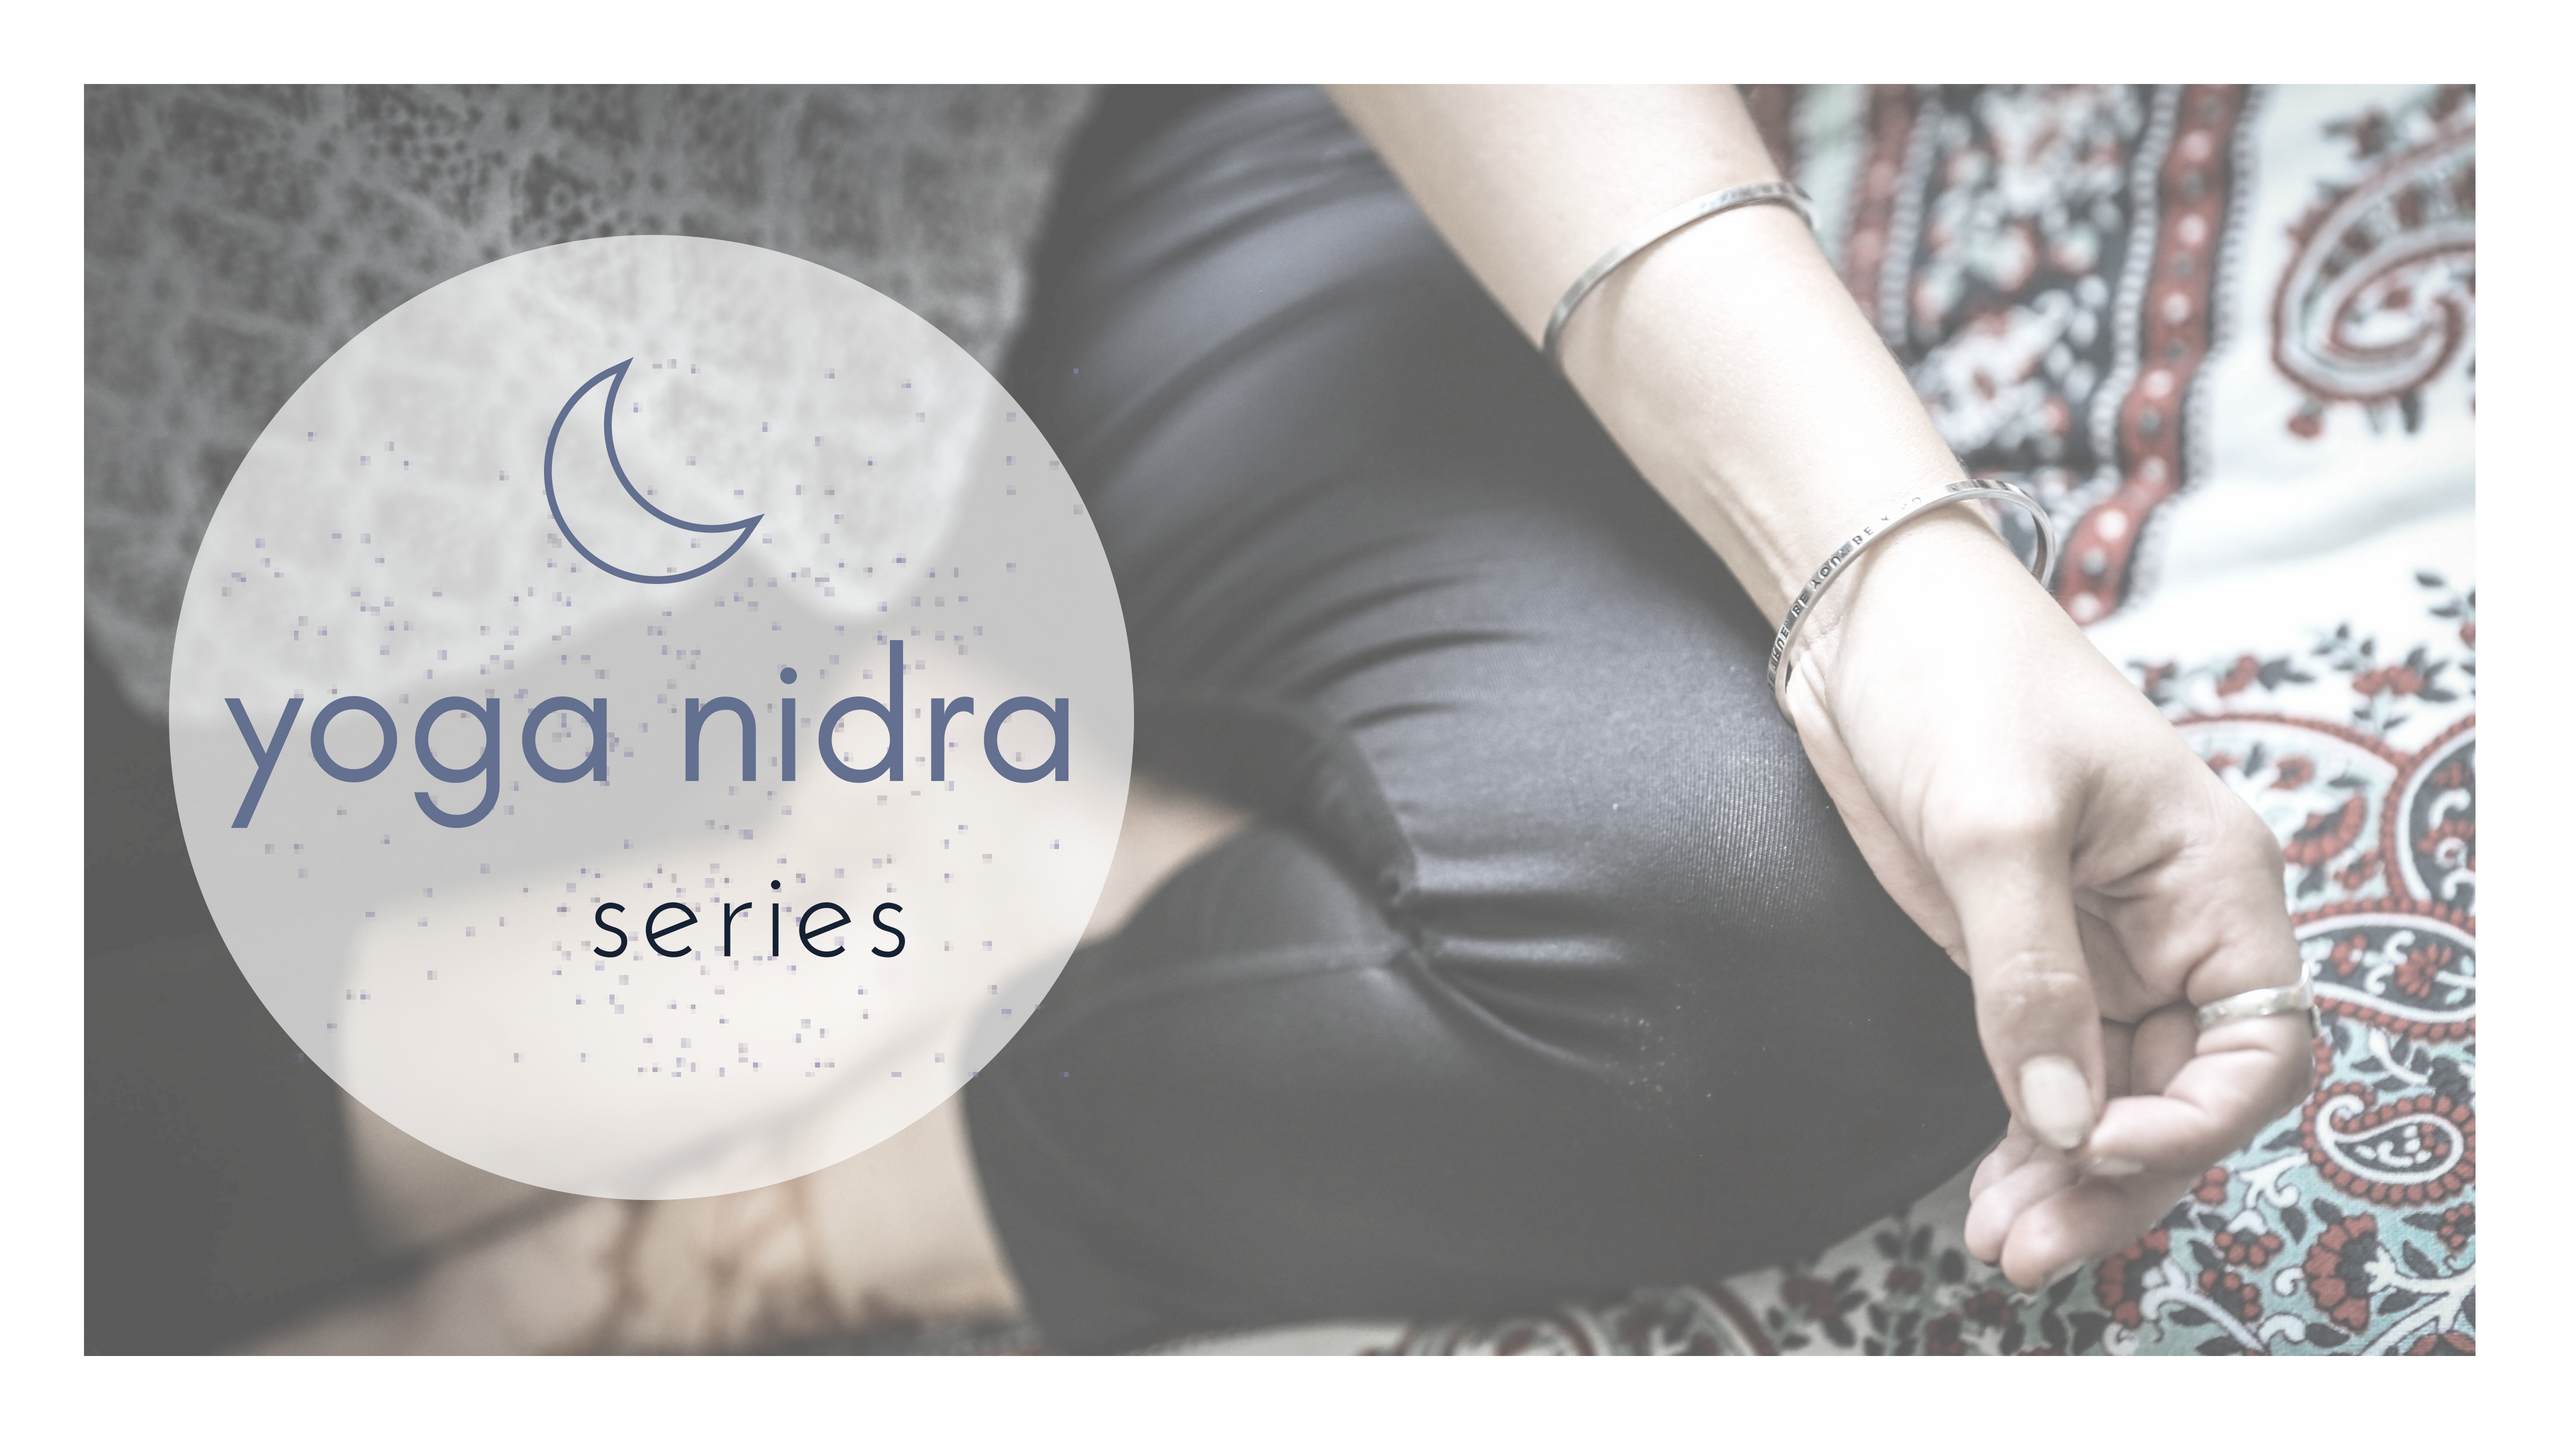 yoga nidra practices